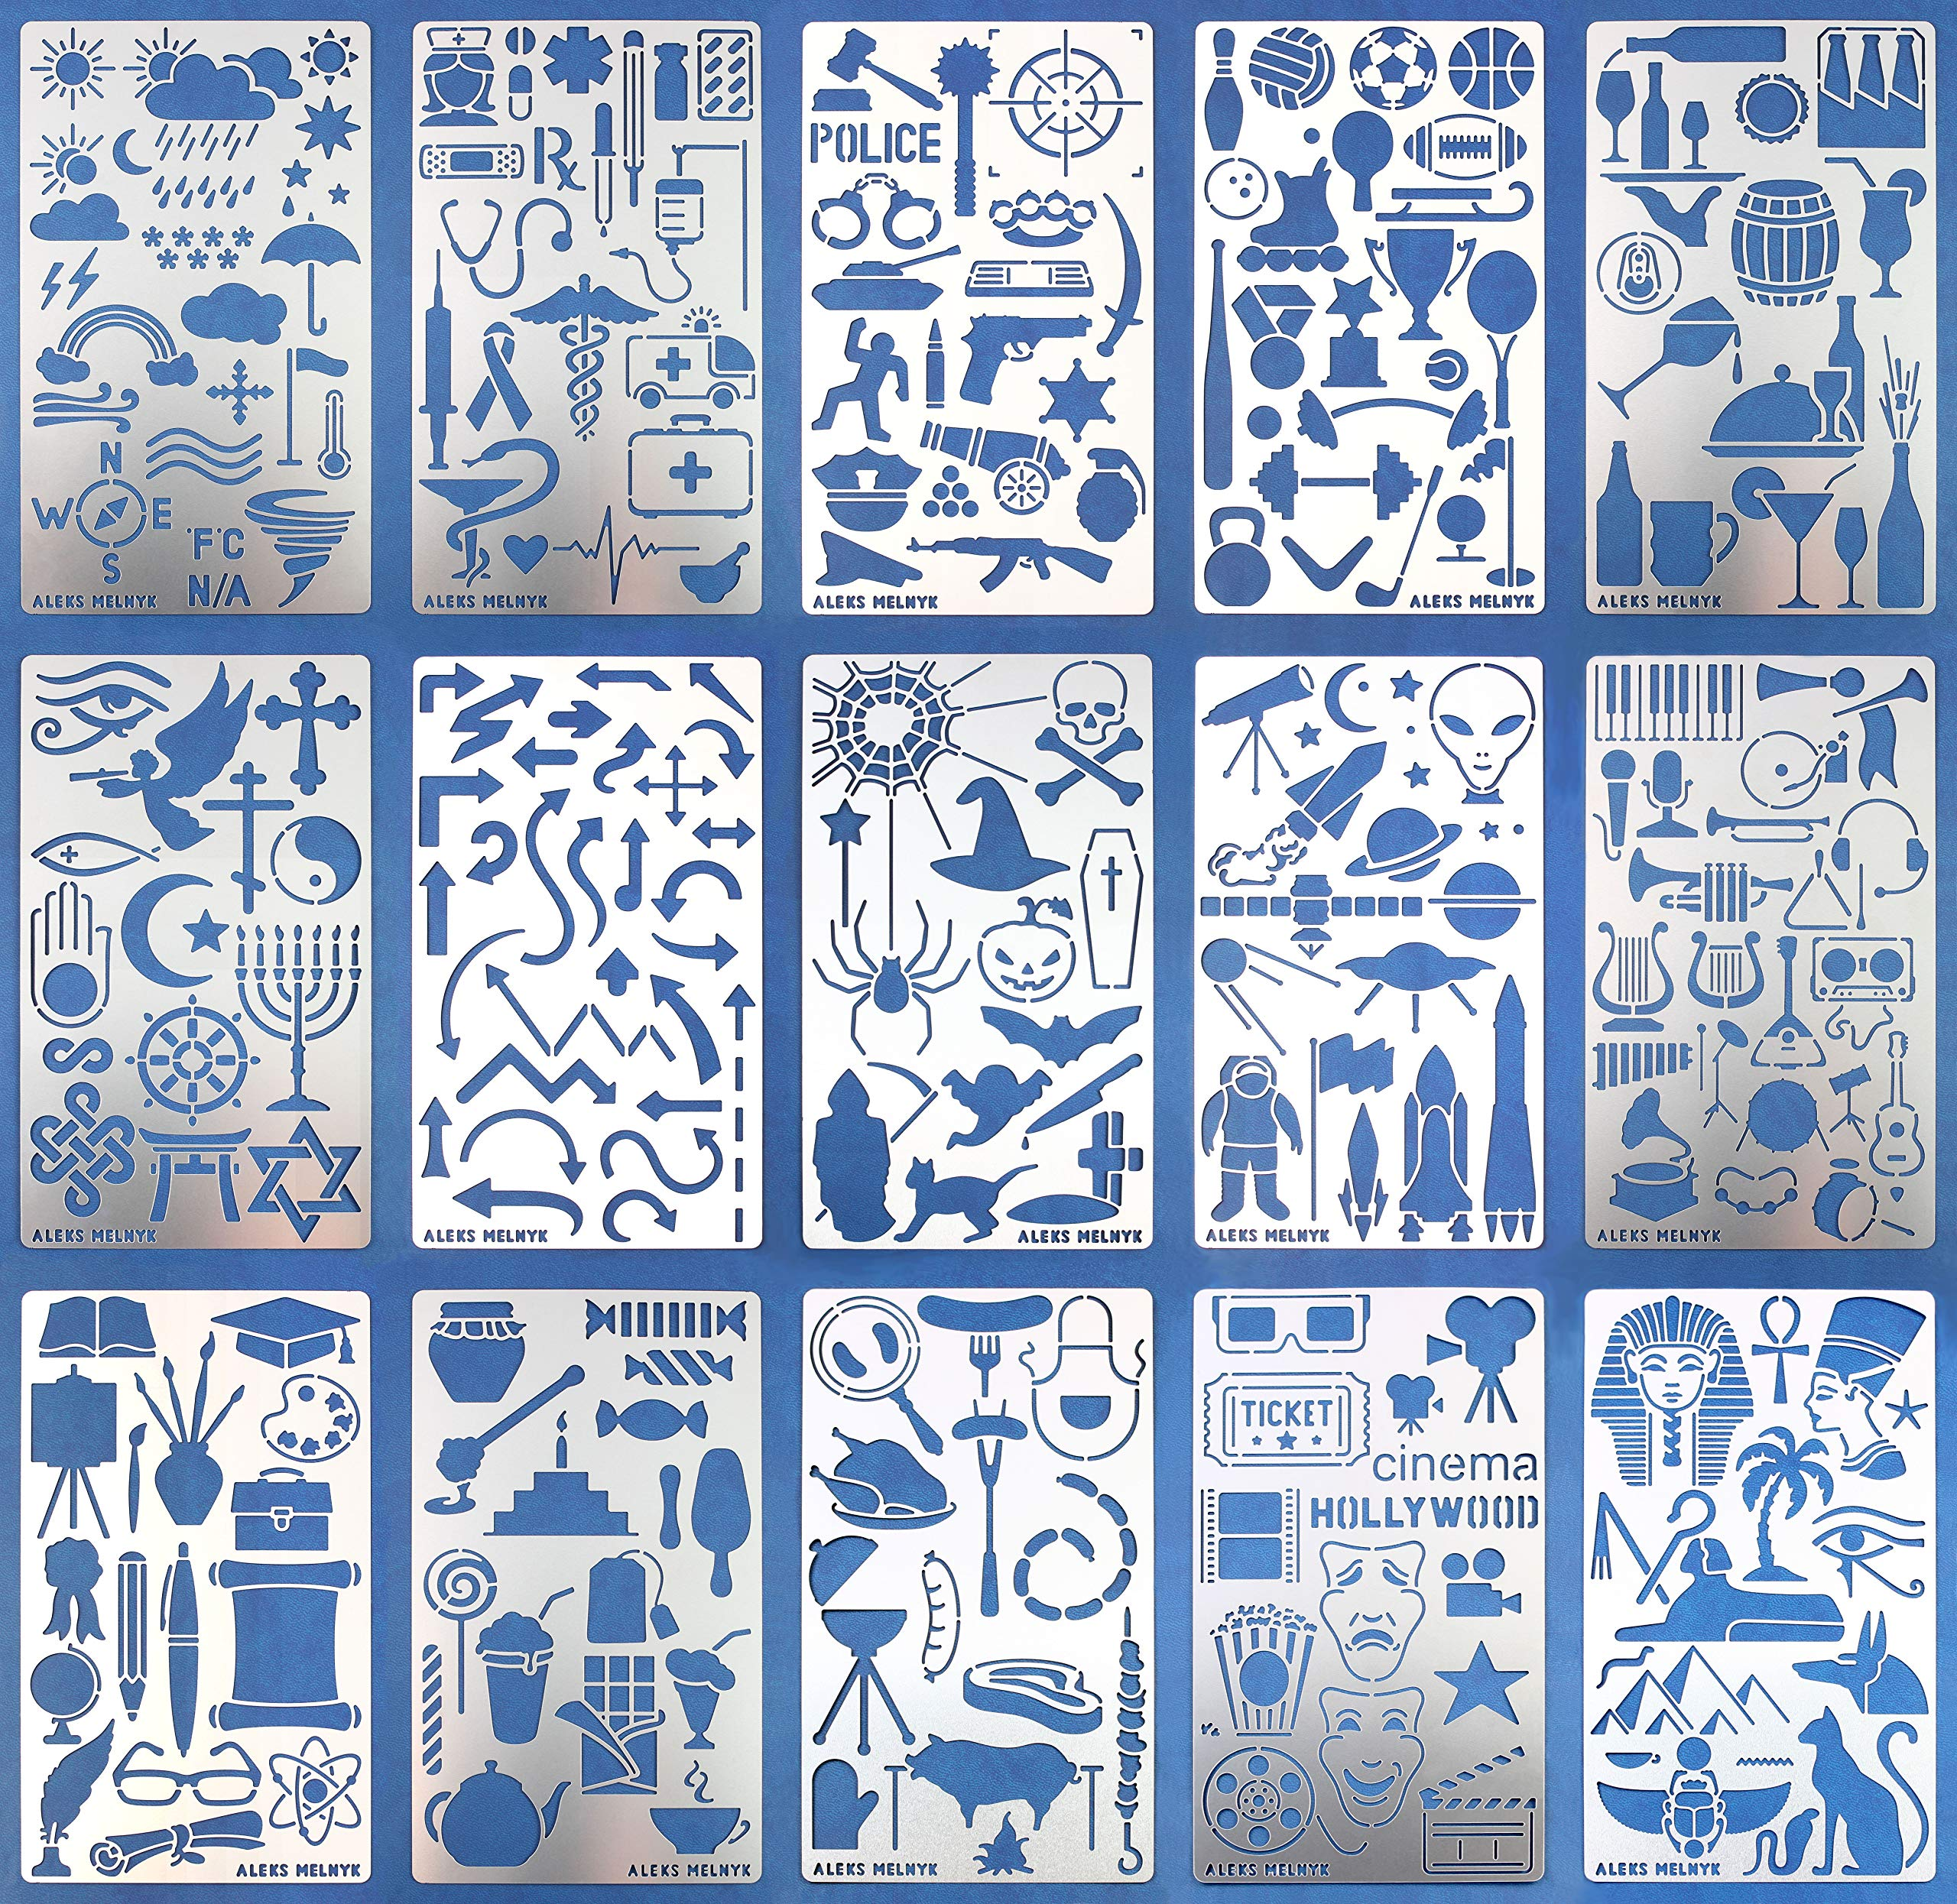 Aleks Melnyk #47 Large Set of Metal Journal Stencils/Stainless Steel Stencils Kit 15 PCS/Templates Tool for Wood Burning, Pyrography and Engraving/Scrapbooking/Crafting/DIY